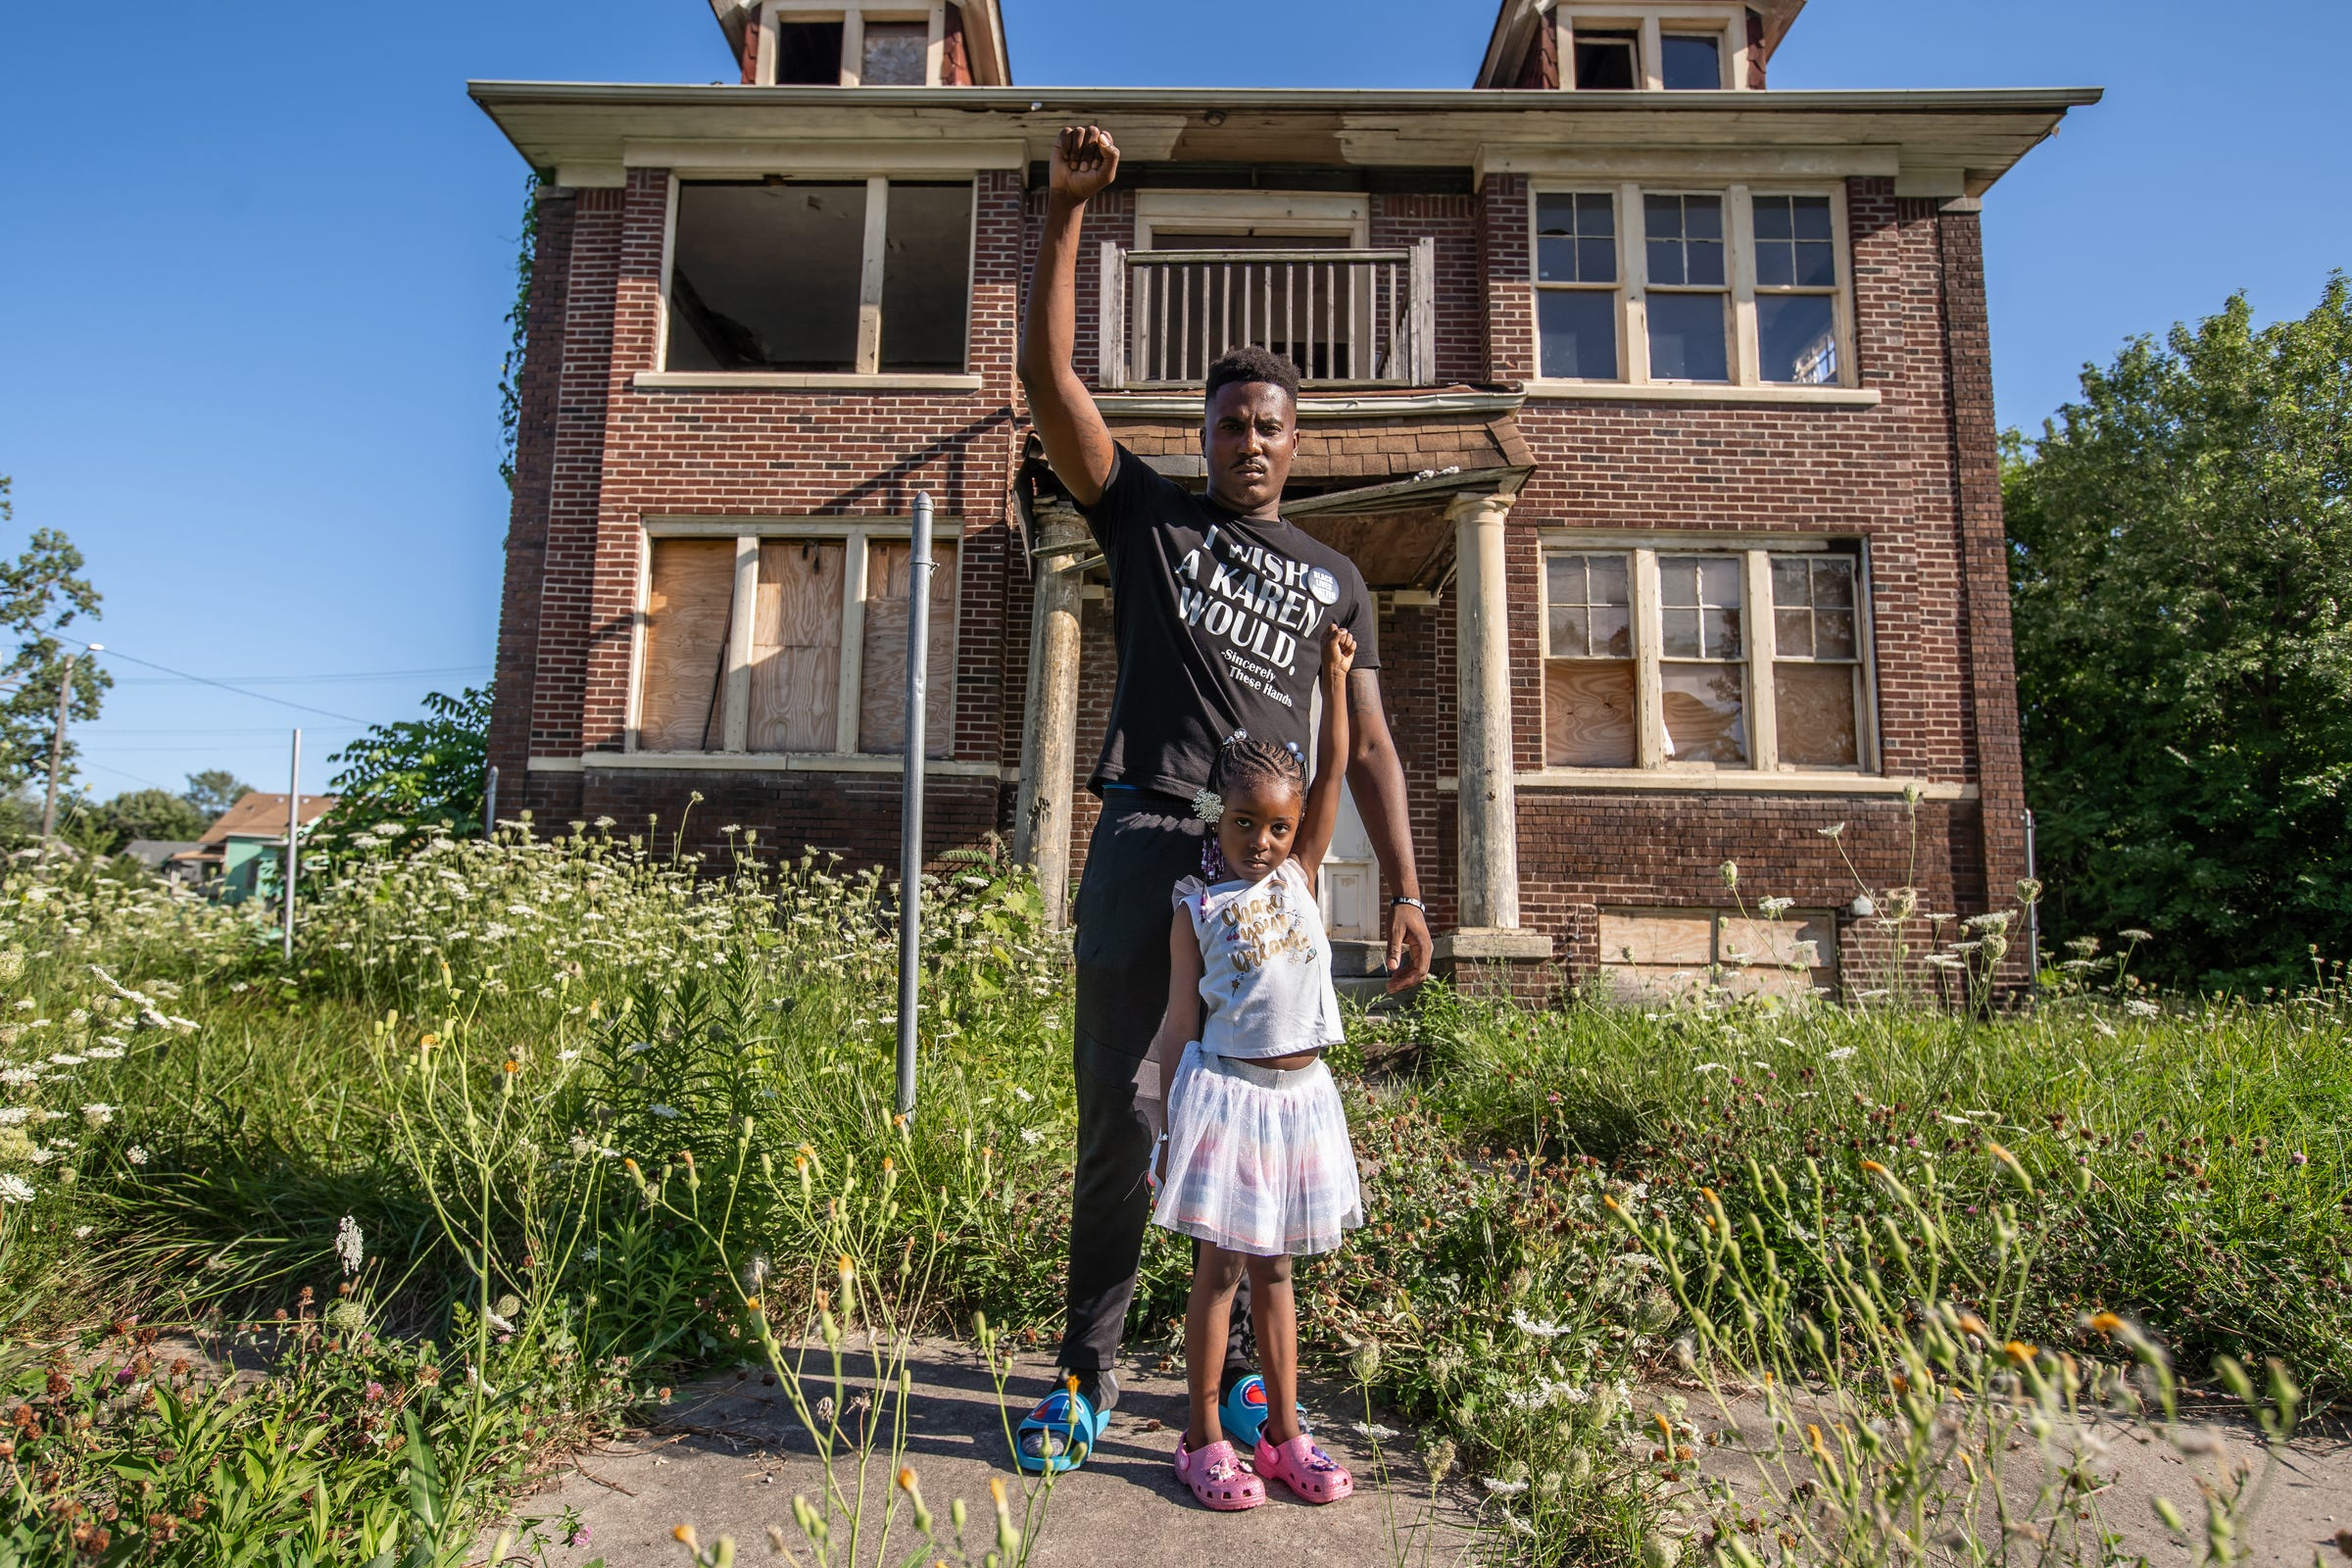 """Jae Bass, 25, of Detroit poses for a photo with his daughter Daria Bass, 5, in front of an abandoned house on Collingwood Street in Detroit on Thursday, August 20, 2020. """"I look around, I see abandoned houses. I see degradation. I see desolate areas and I think I'm finally at an age and experienced enough to understand that that is all on purpose. It just is not a lack of resources because of the lack of resources. It is a lack of resources because we are intentionally being starved of resources so that we have limited options on how to get resources which just further perpetuates crime and other things in my neighborhood. So the reason I march is because I know the only way that's gonna change is if the people come together and actually make that change happen. If this is truly a democracy, it means that the country should run off of what the needs and desires of the people are. That we need to take that power back. So we get in the streets and we take that power back,"""" Bass said. """"If you didn't think that we would be out here a hundred days, you are truly underestimating the power of this movement because we'll be out here a hundred more days and one hundred more days after that. However long it takes to get justice and truly make change that's gonna be everlasting in our city, state and country and eventually the world."""""""